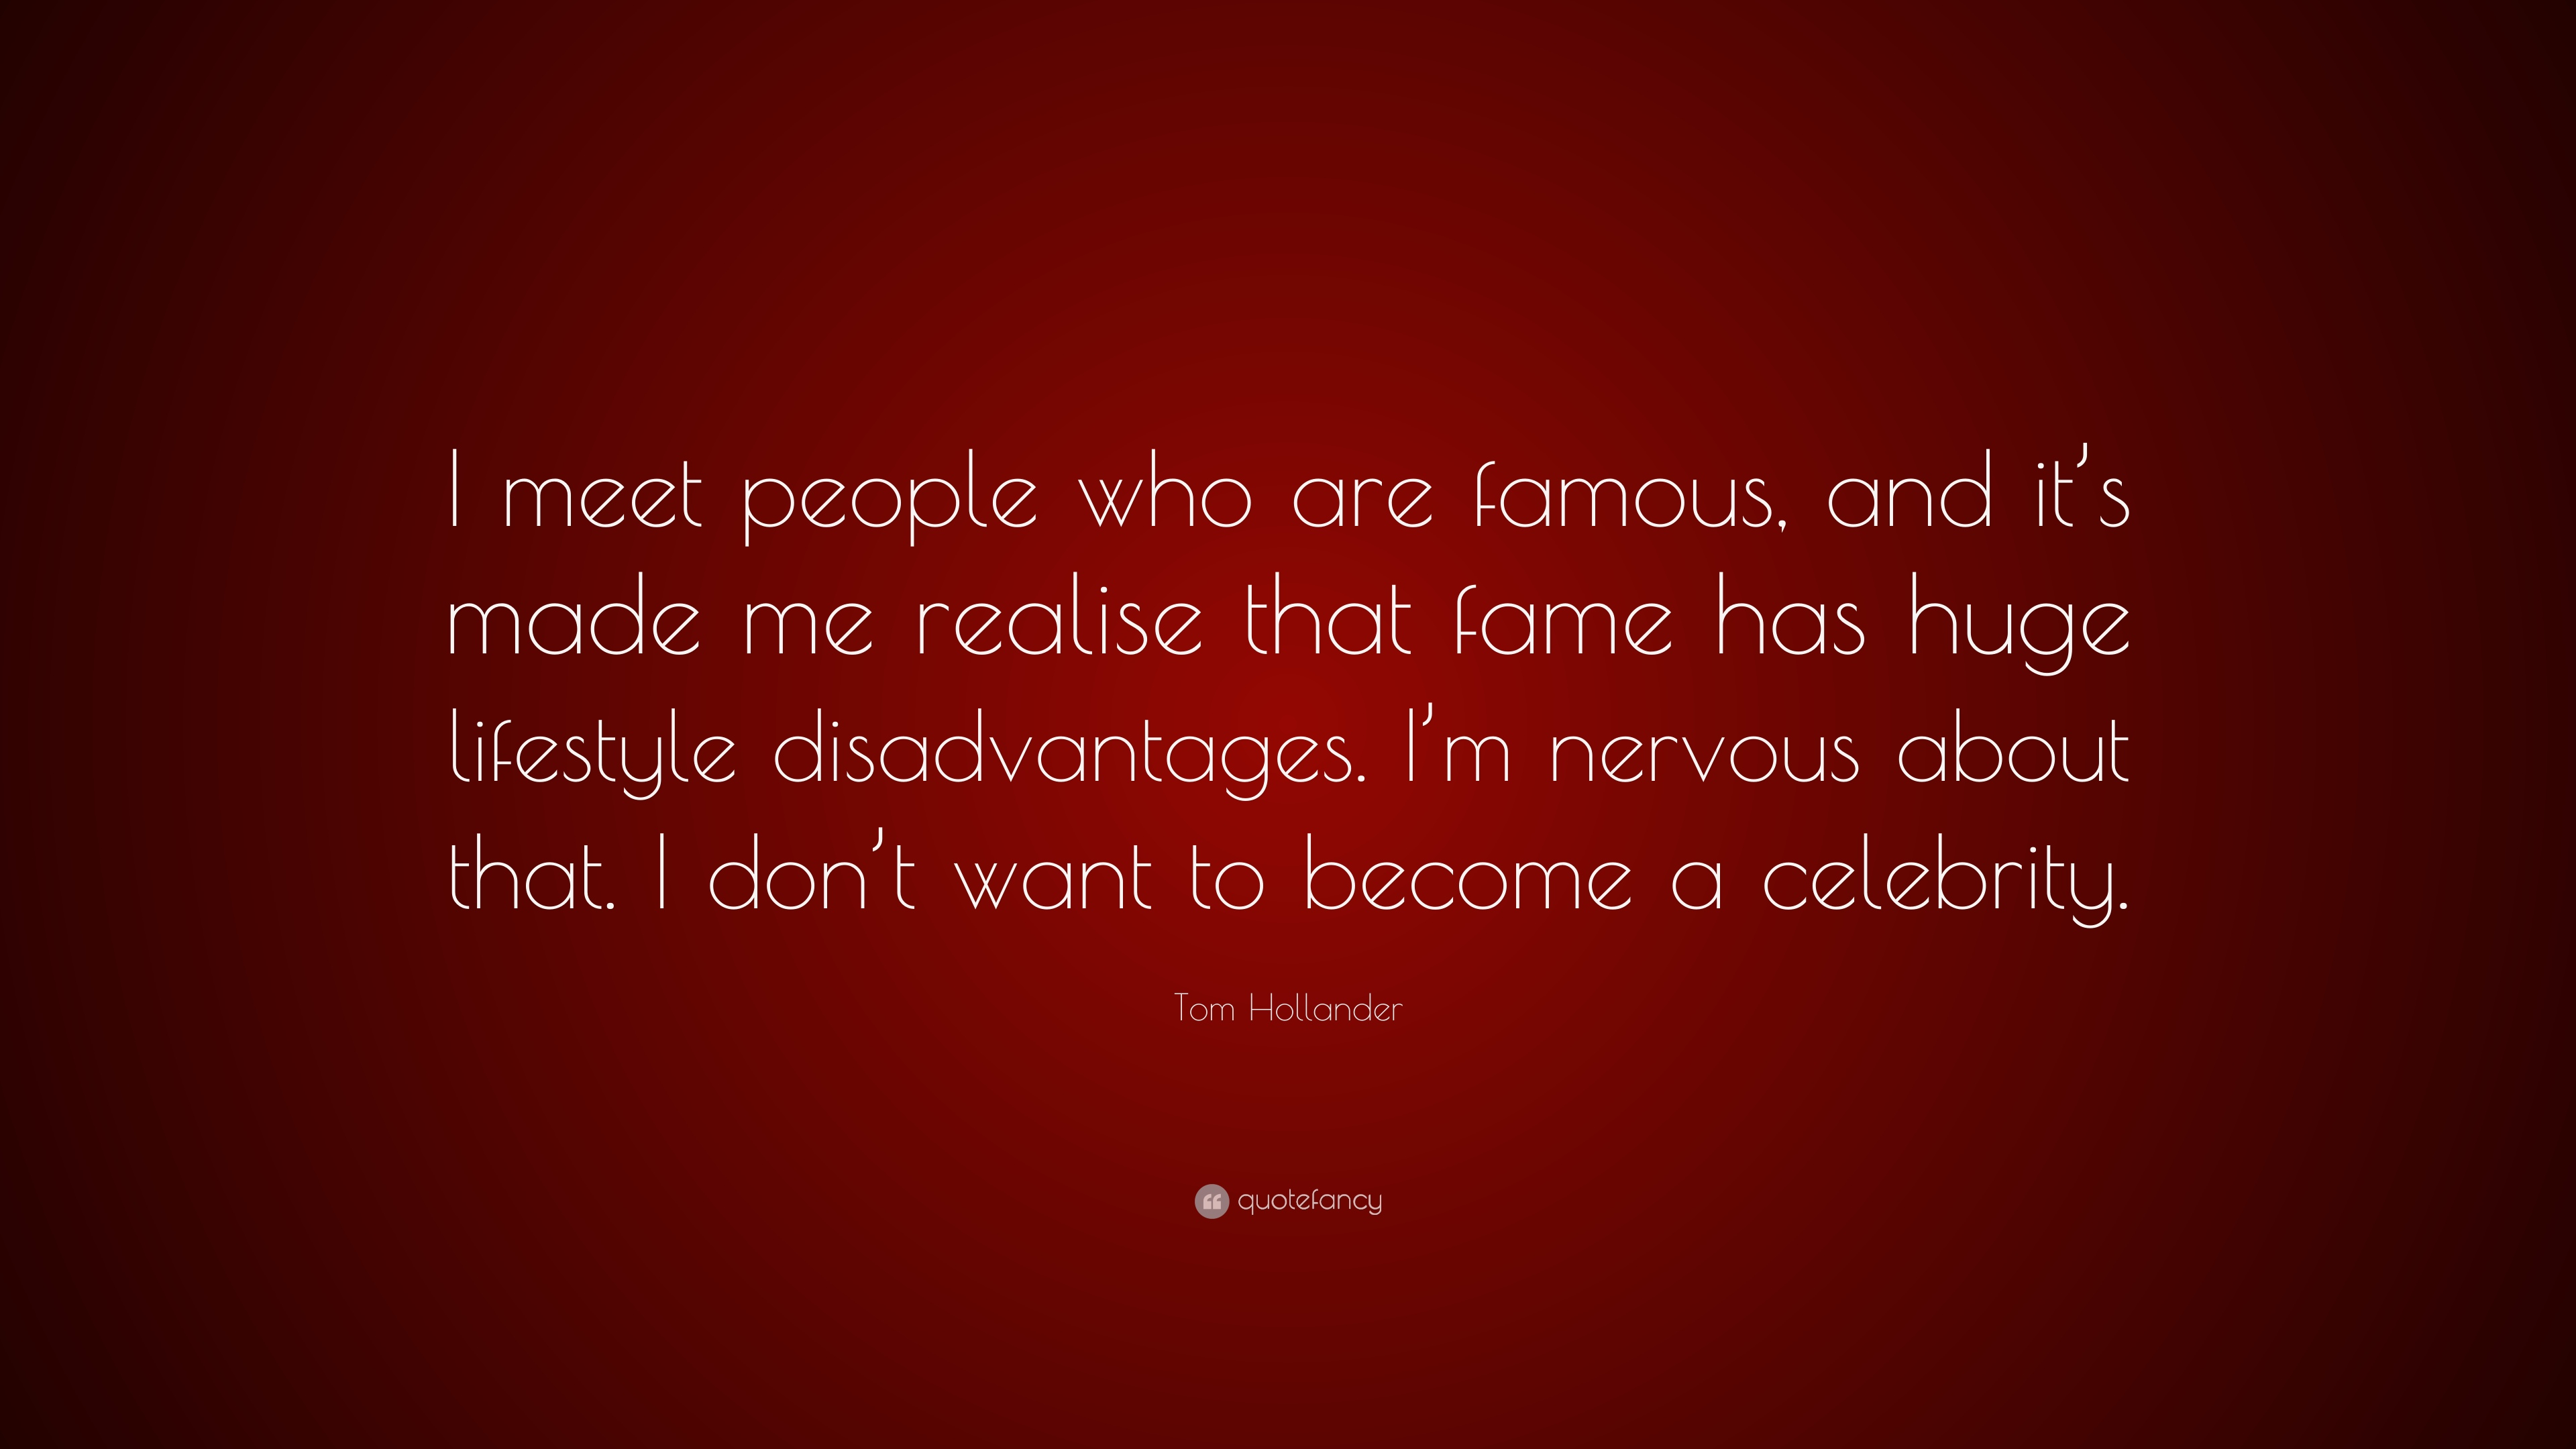 15 Advantages And Disadvantages Of Being Famous - YouTube